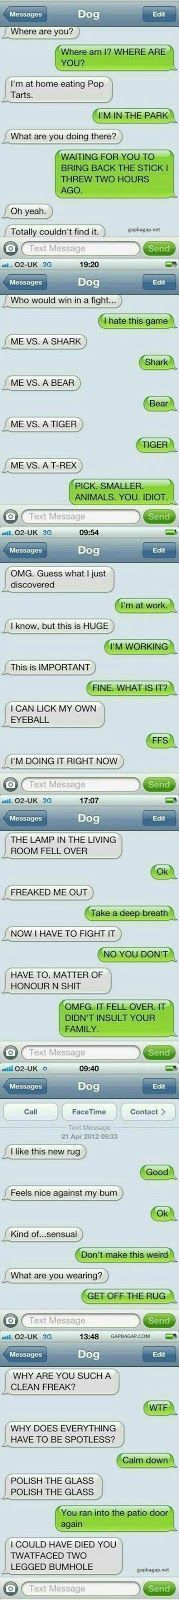 """5+ Funny Text Messages ft. Funny Dogs """"How To Start A Game Or Utility App Business In Less Than A Week... With Zero App Development!"""" #funnydogs"""